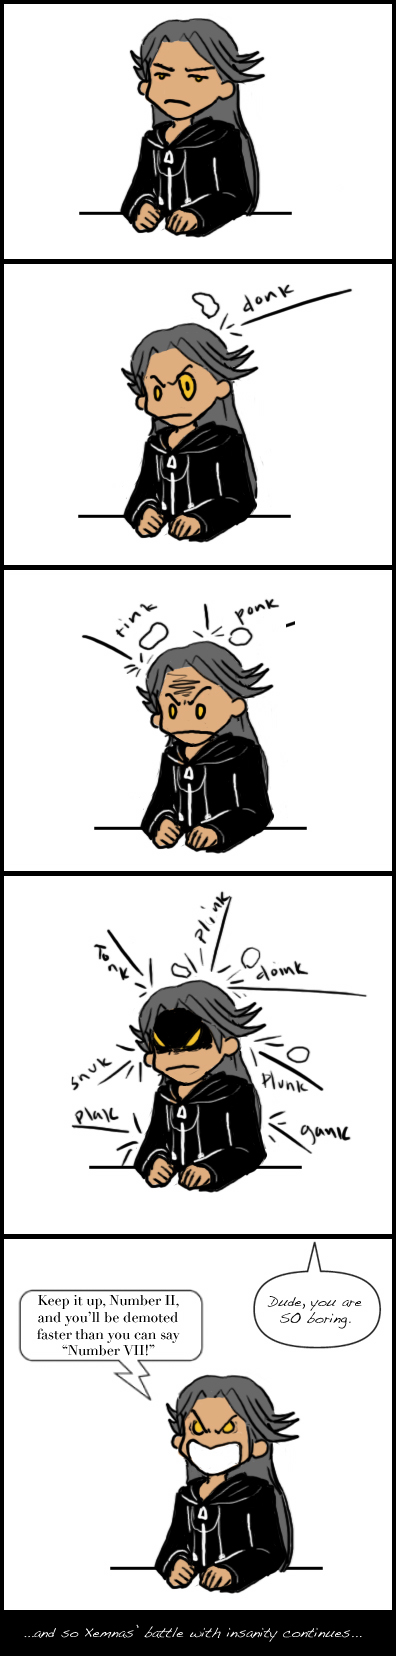 Xemnas vs the Rubber Bands by Chajiko